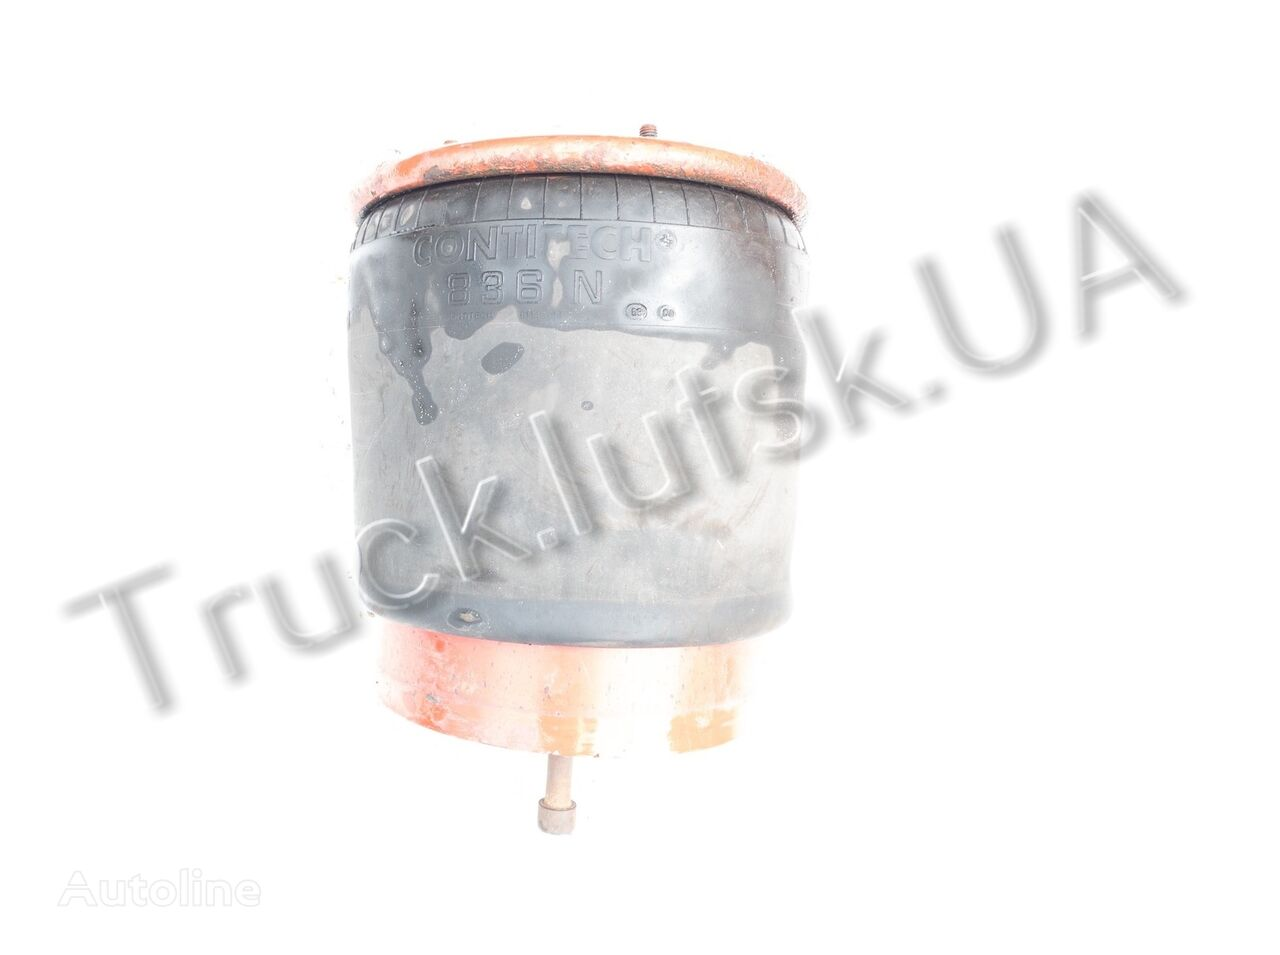 DAF (5114013) air spring for tractor unit